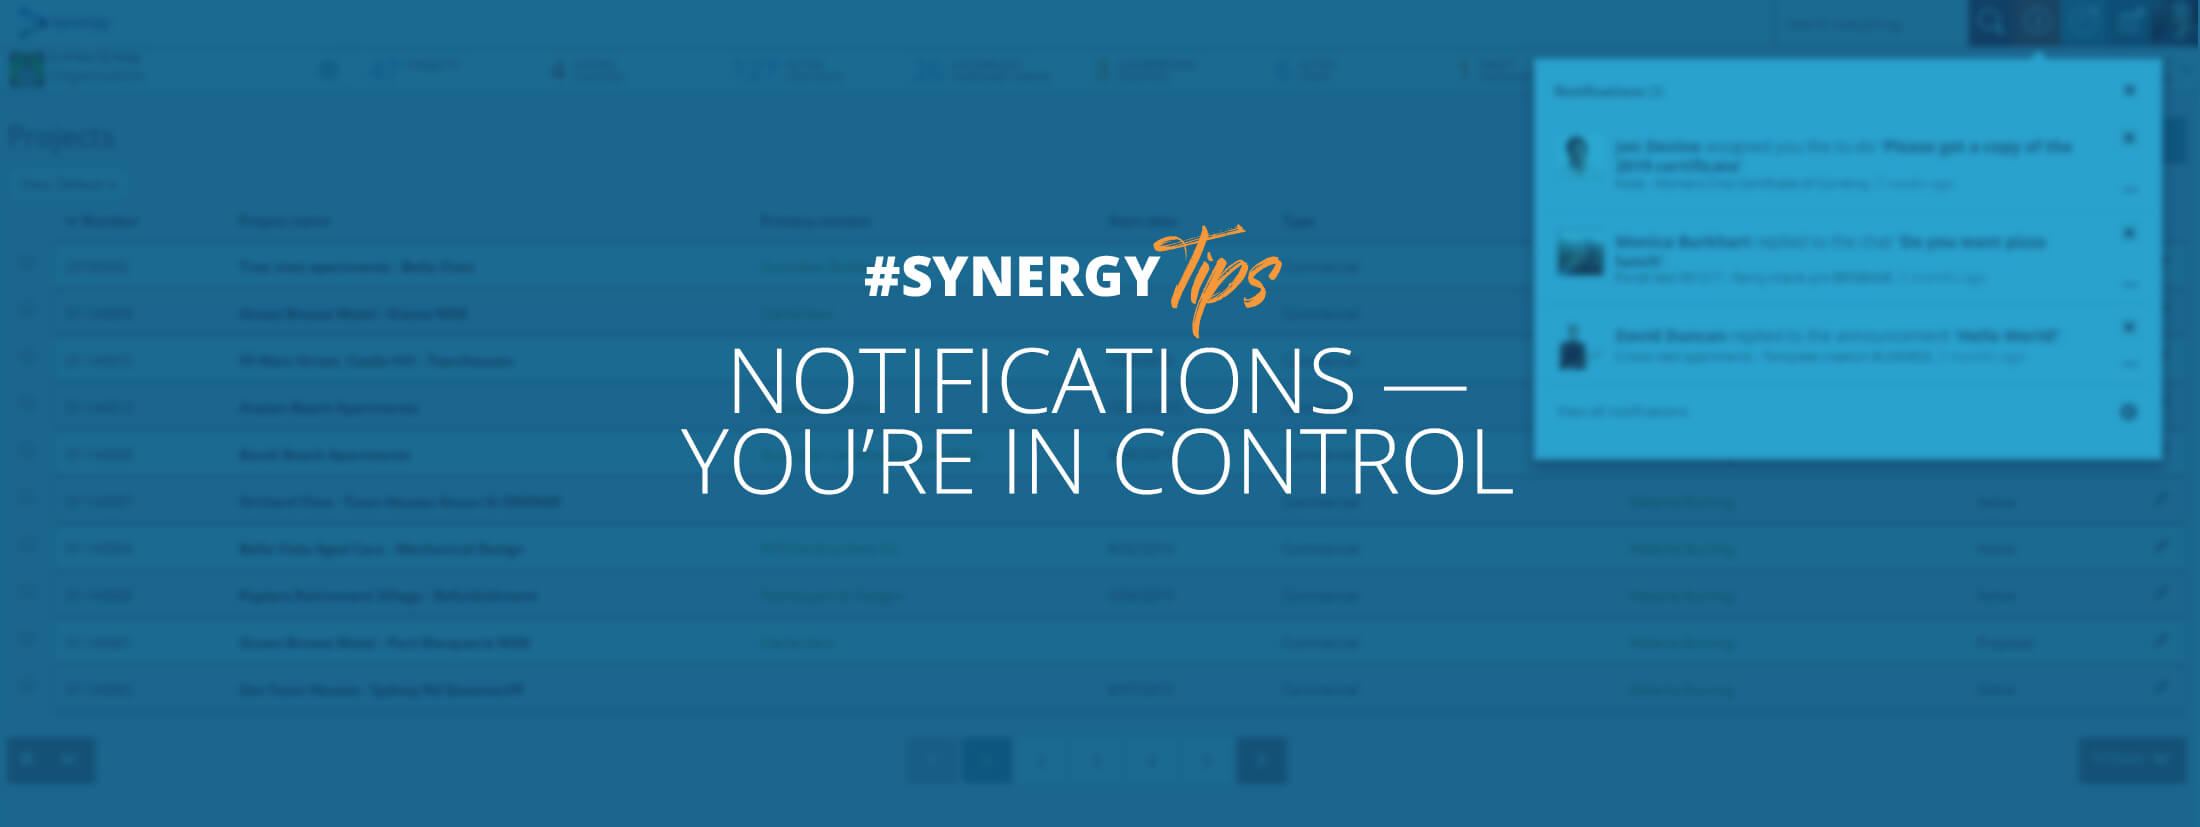 Learn how to manage email notifications in Synergy.